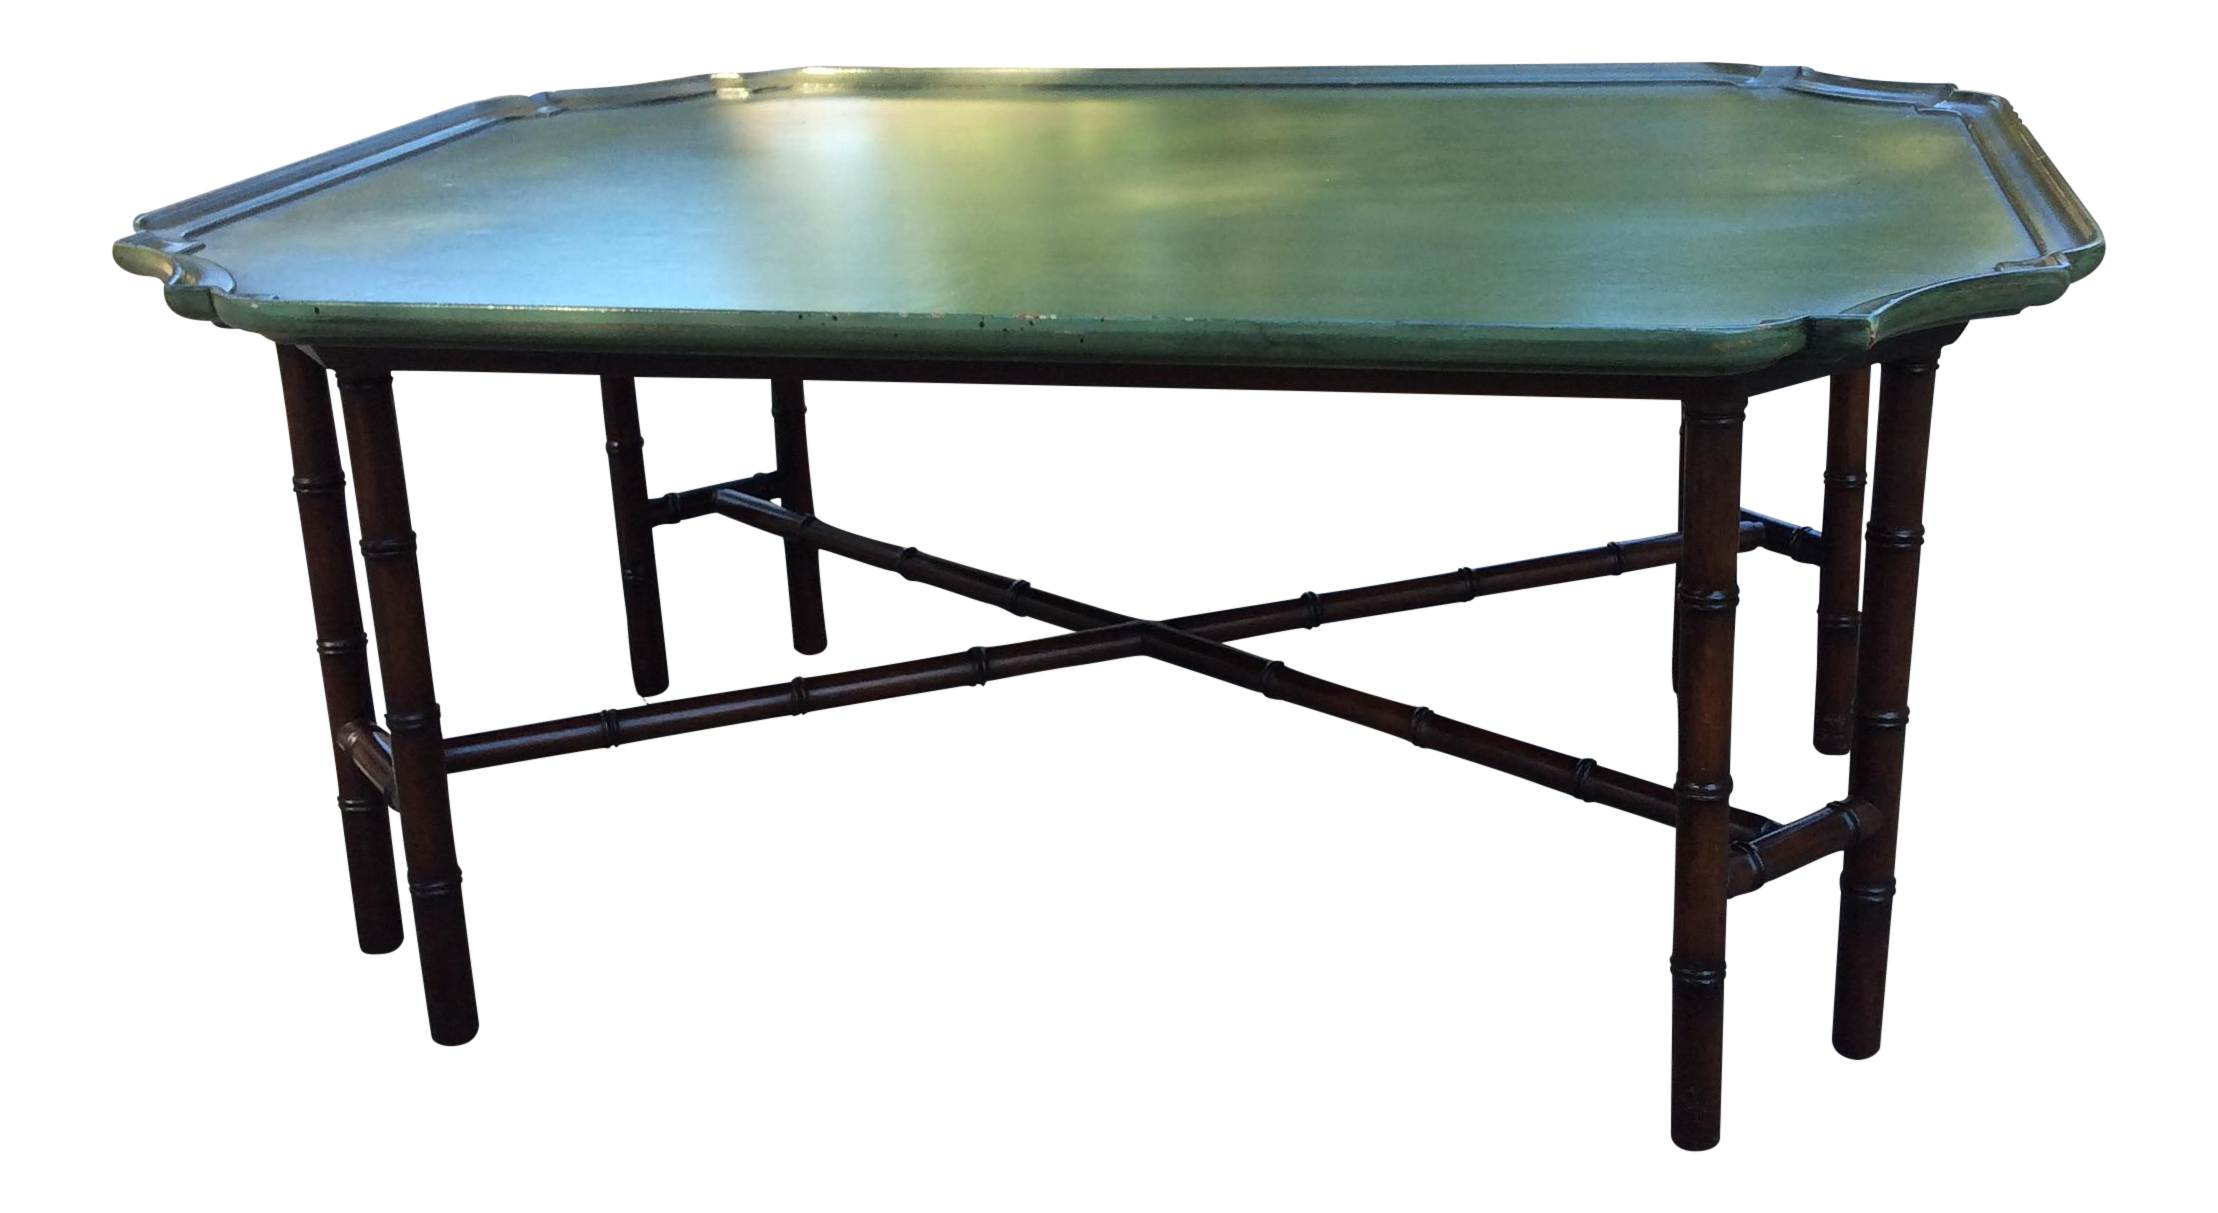 Kittinger Dining Table Images Kittinger Dining Table  : 034afb40 b4a4 47b0 a6a7 5fa30defd684 from www.favefaves.com size 2218 x 1213 png 1998kB